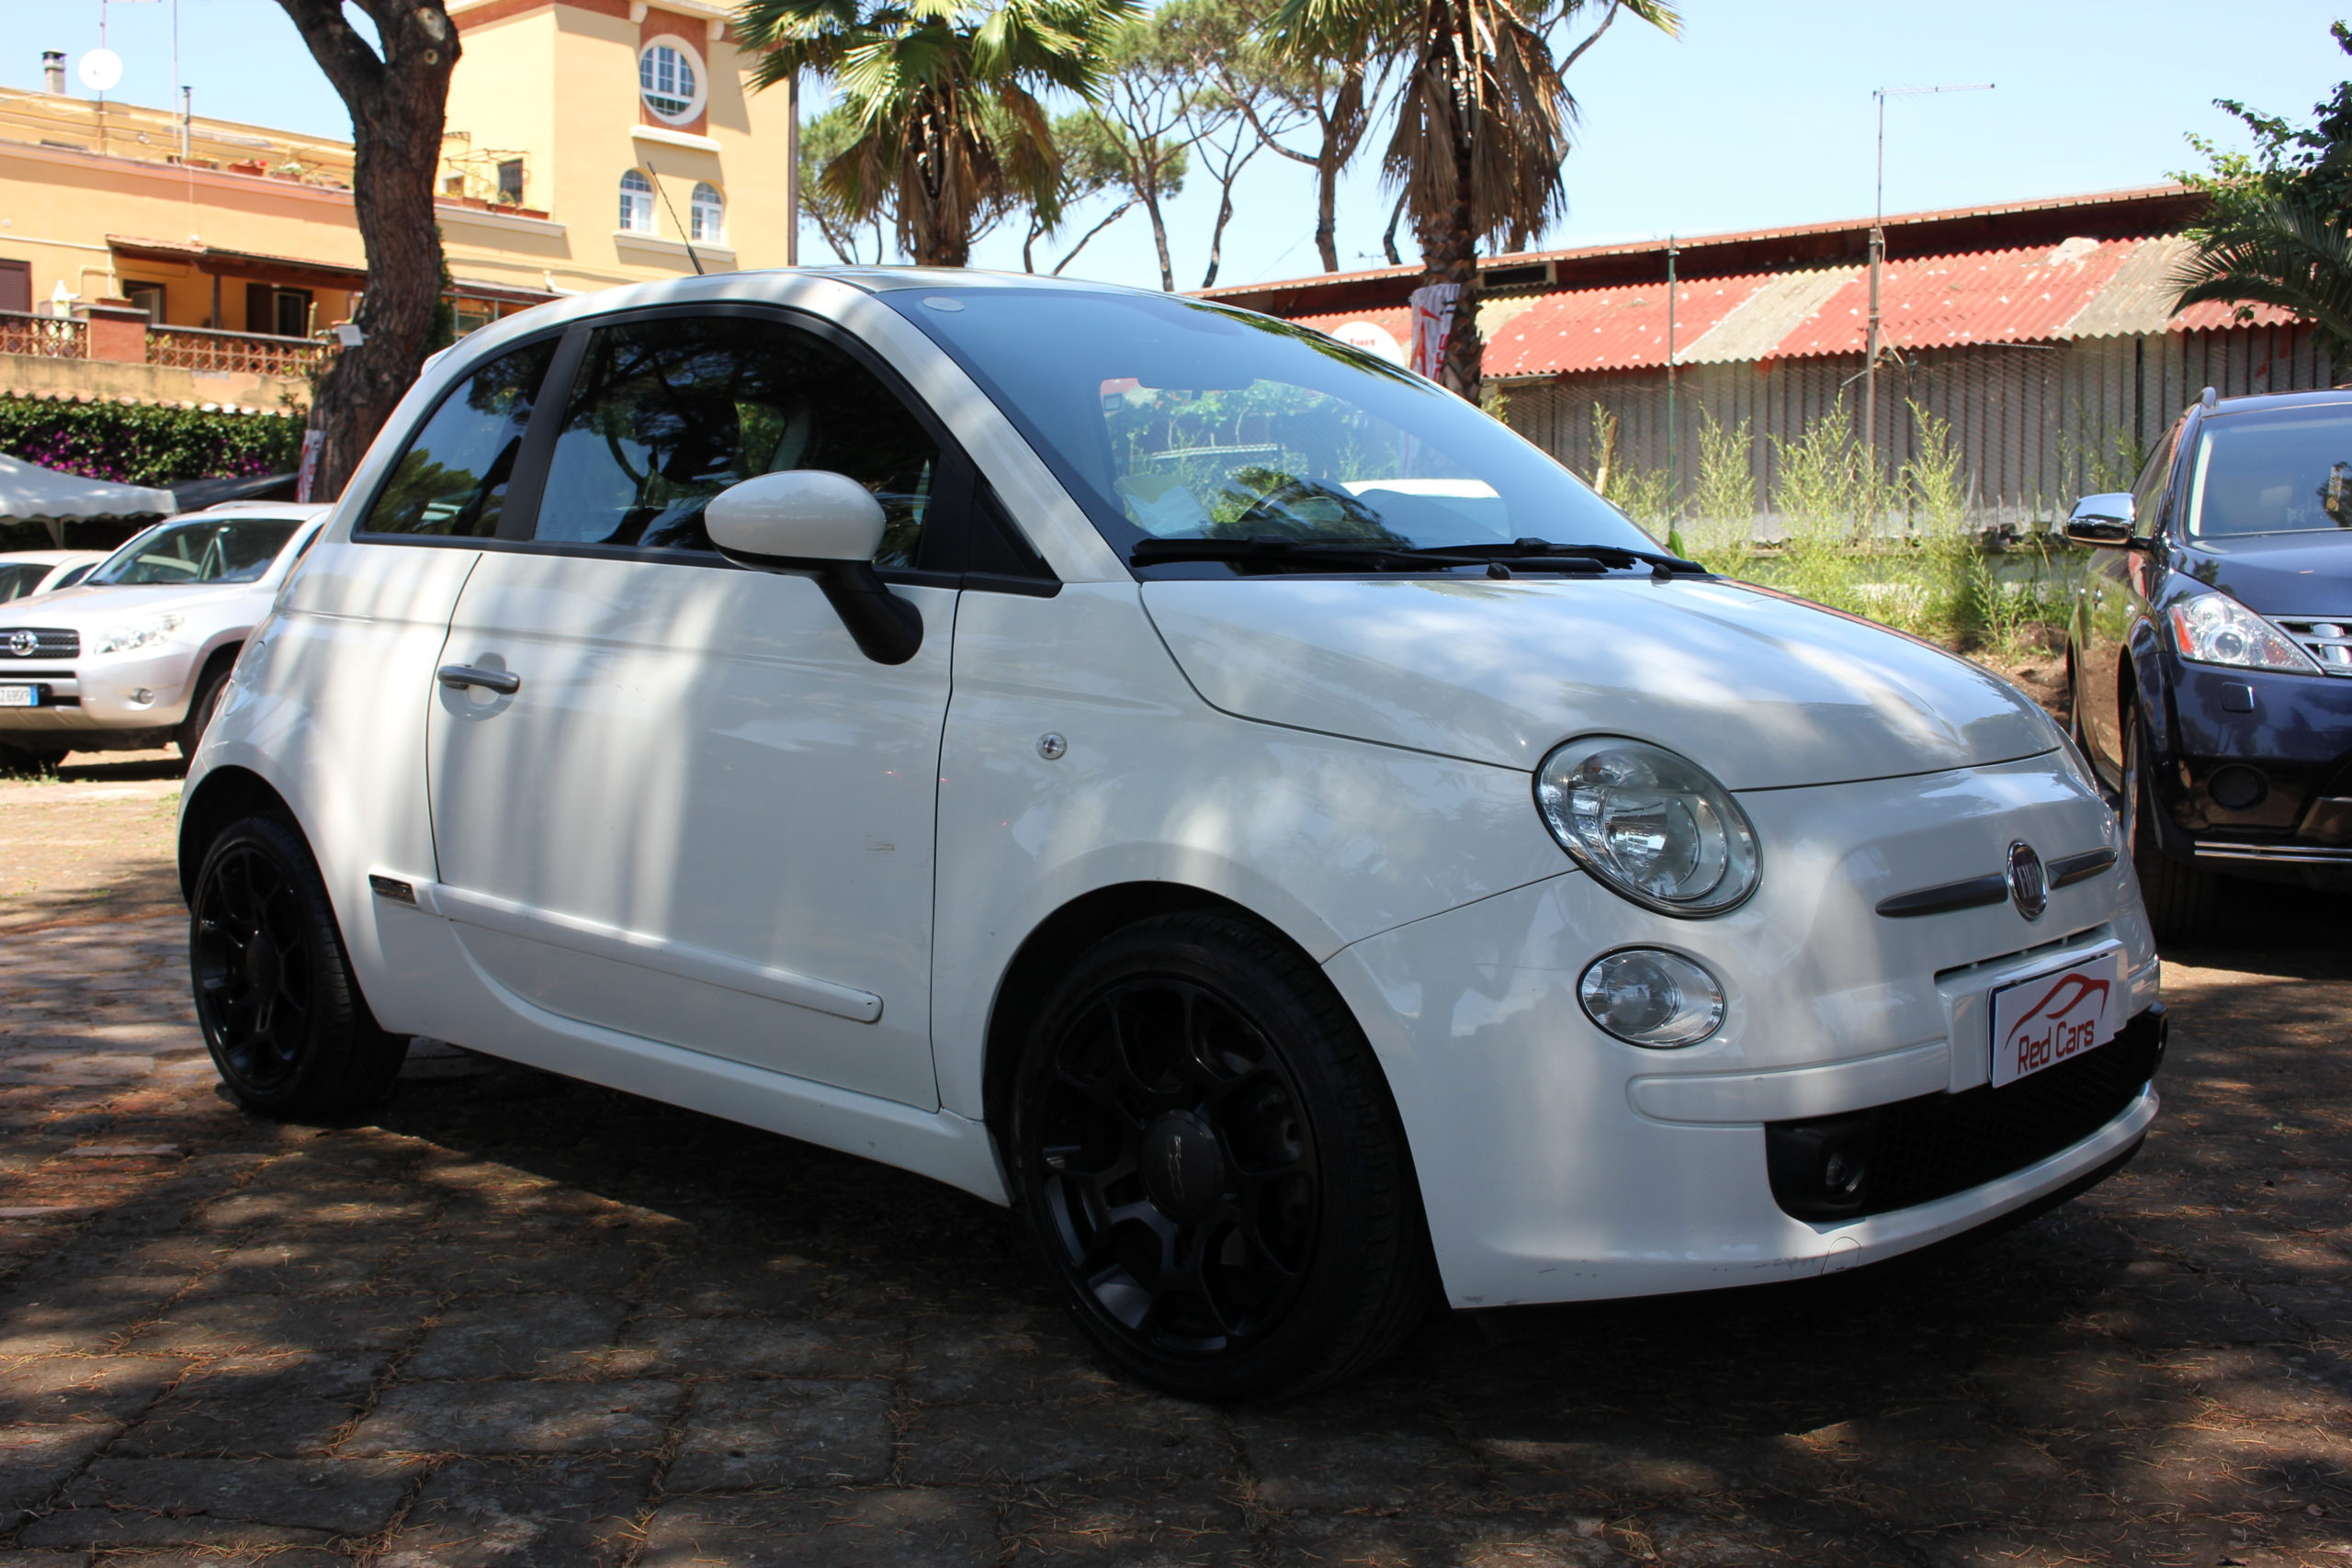 vendita FIAT 500 0.9 TWIN AIR SPORT GPL Red cars via cropani 65 Roma